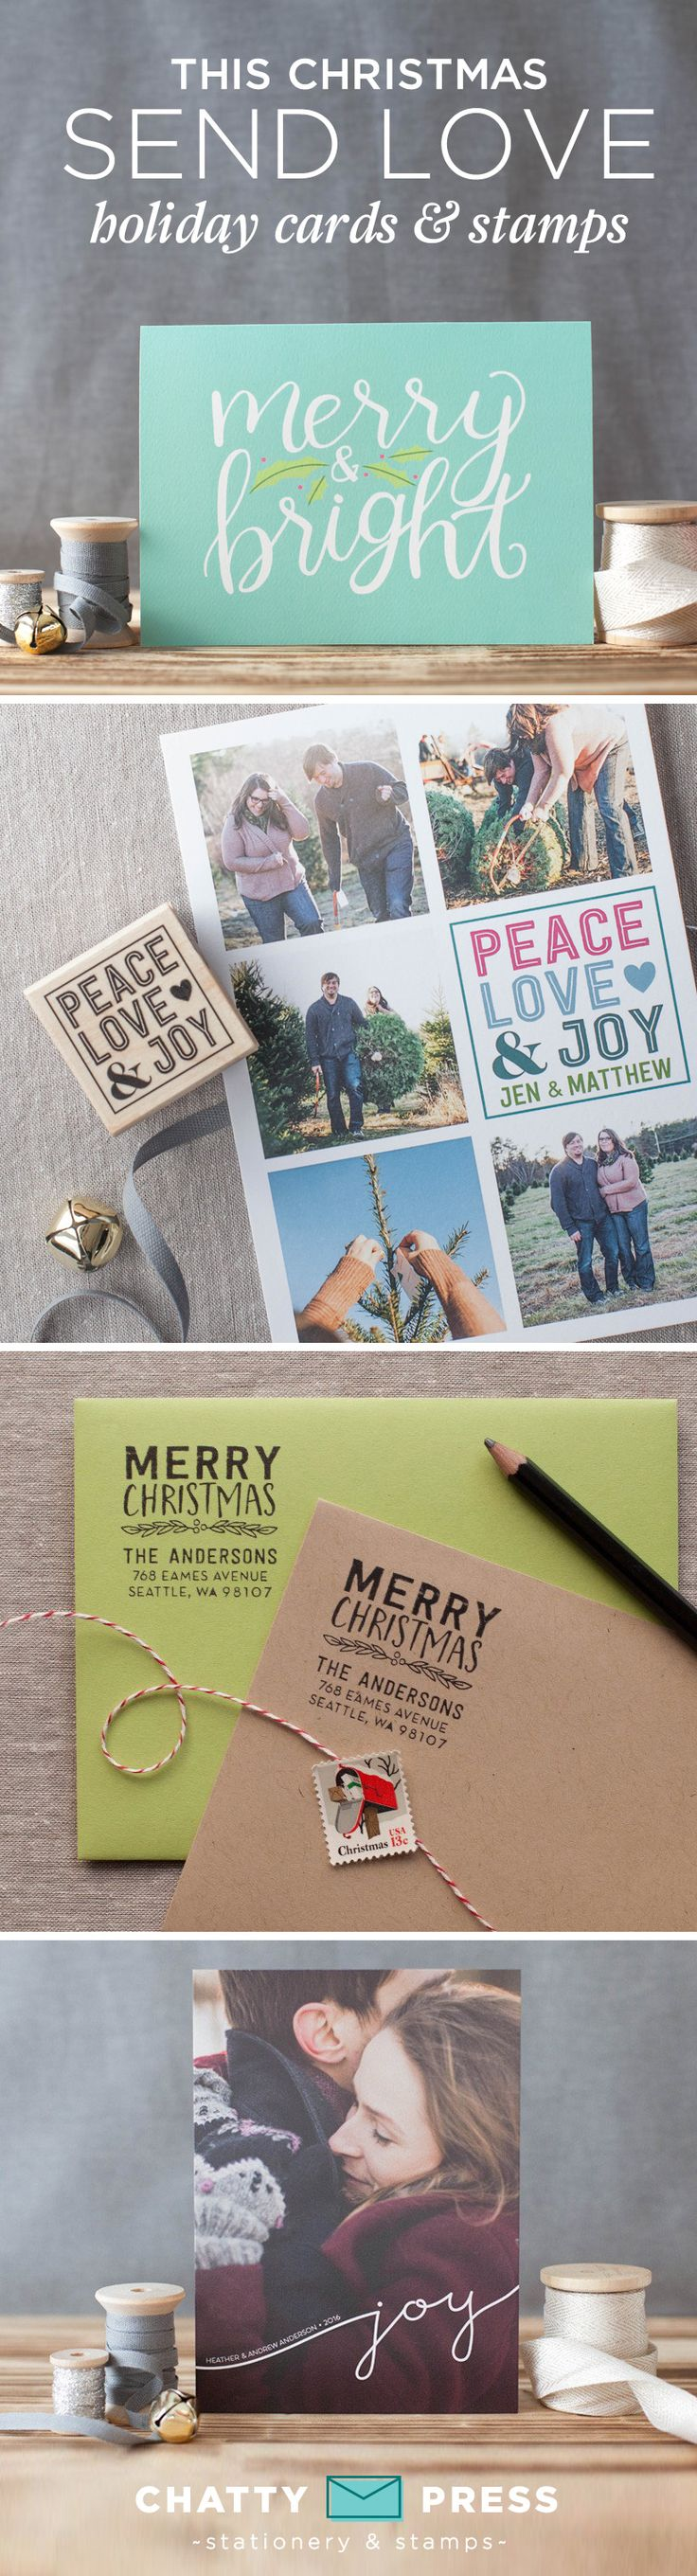 best images about stamp on pinterest